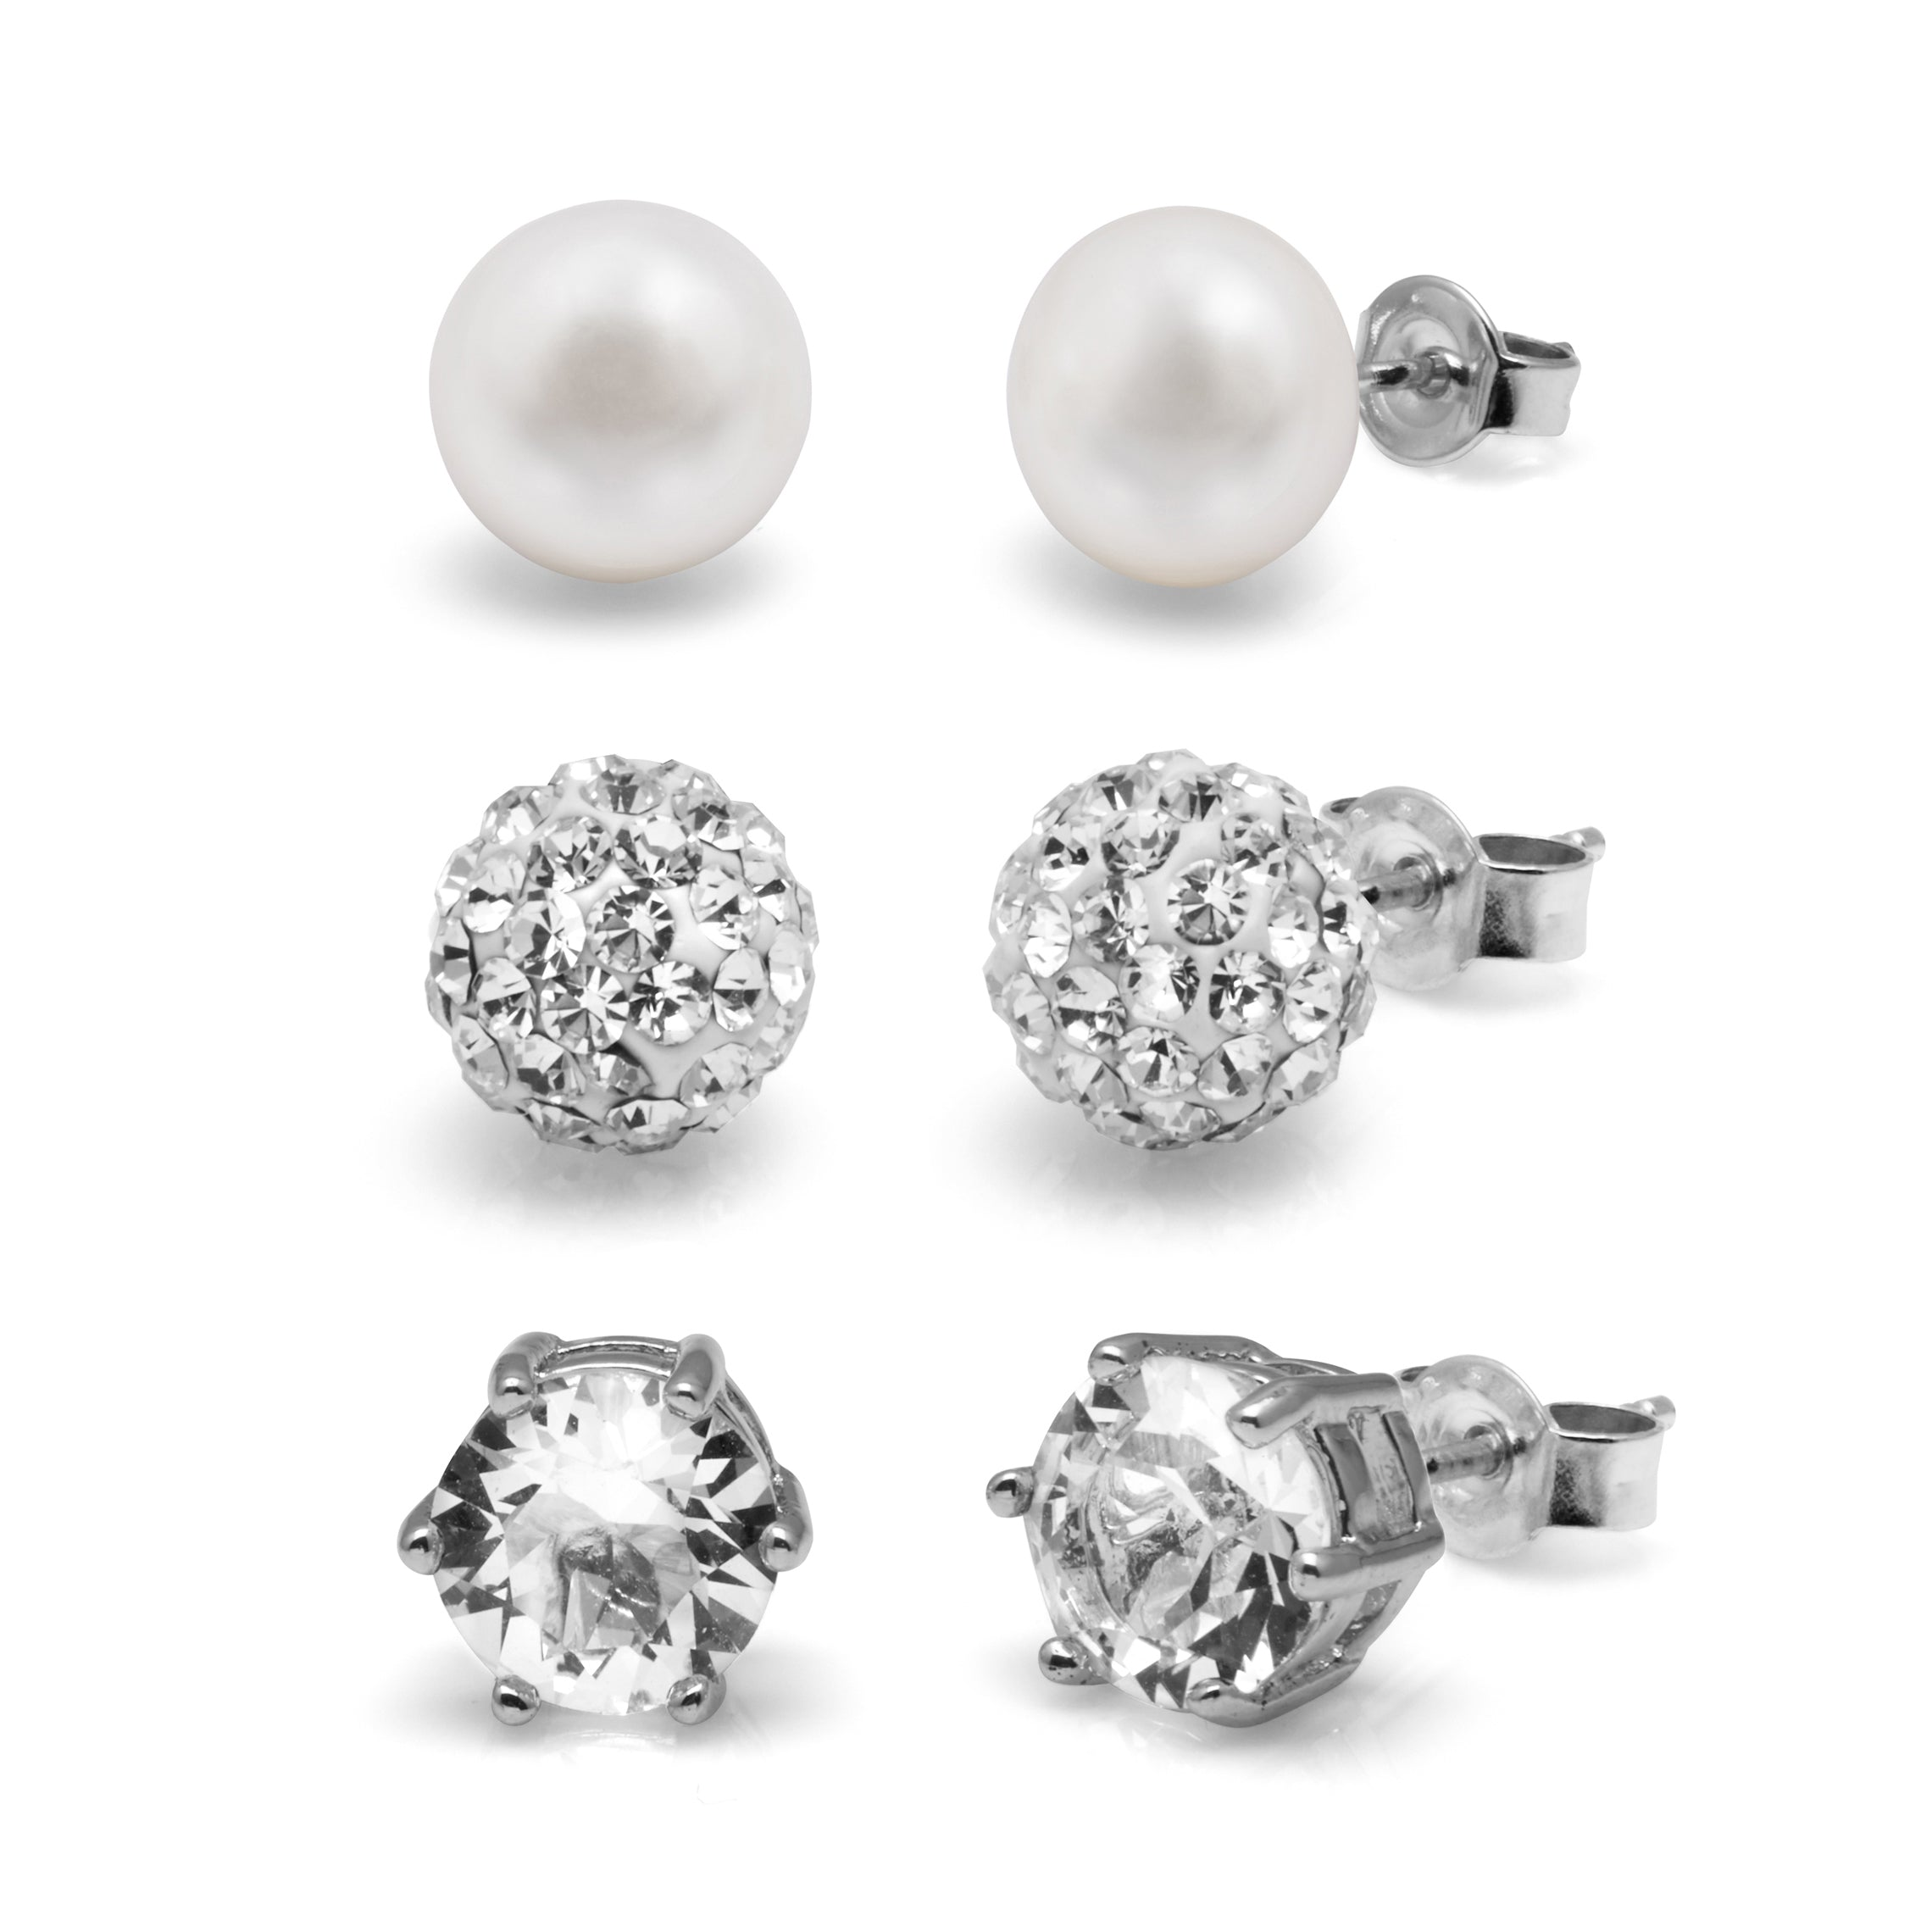 TKKP204 Kyoto Pearl Set of 3 Freshwater Pearl Studs in 925 Silver